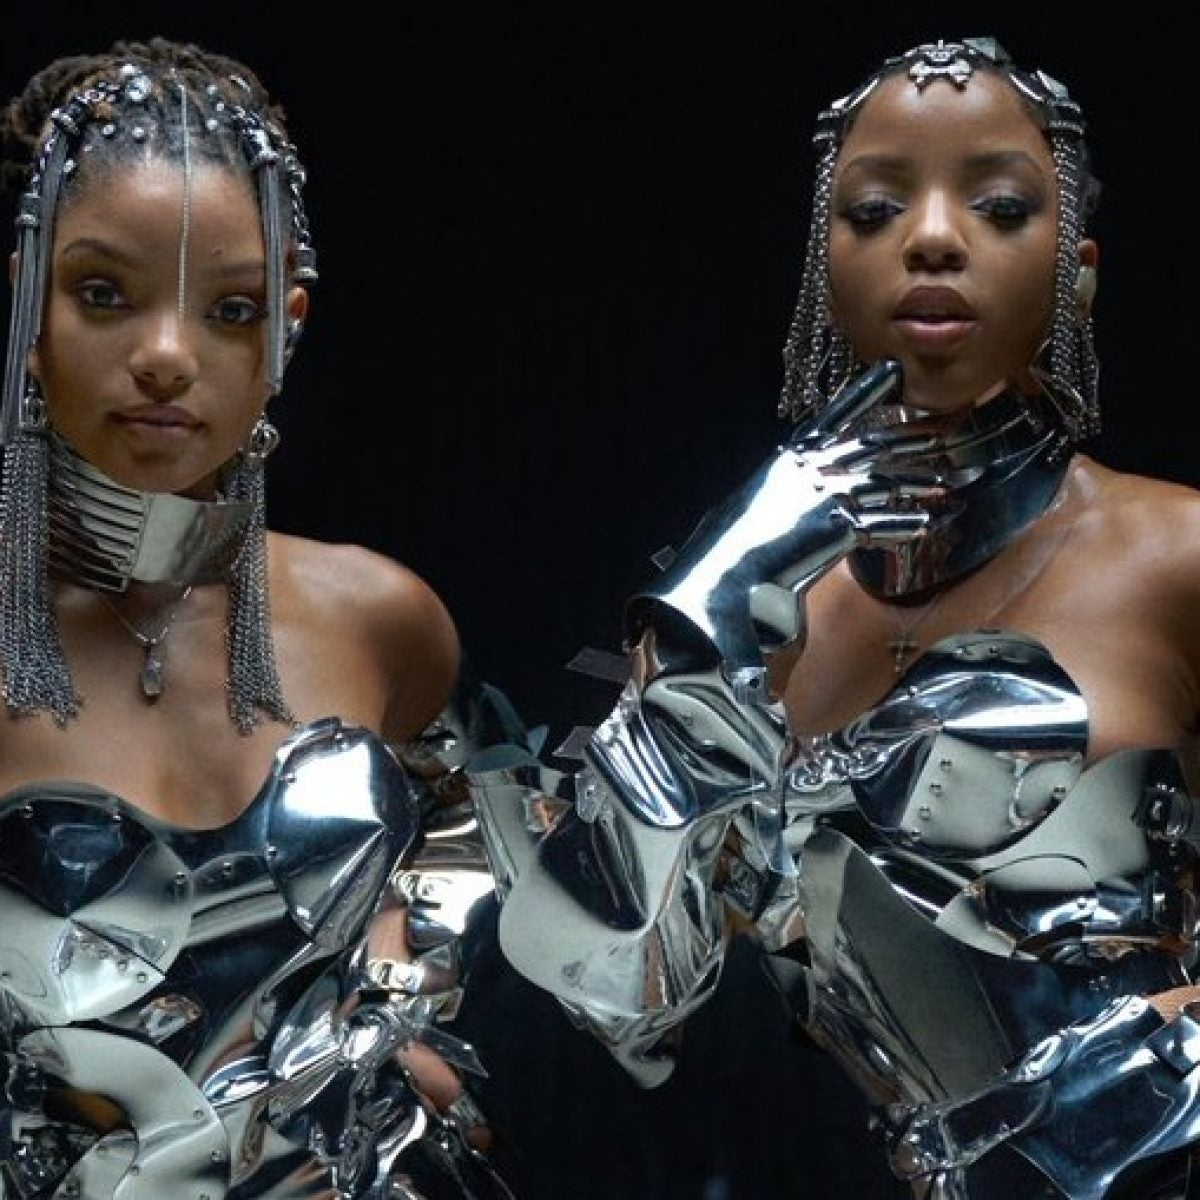 Fans React To Chloe x Halle's 'Ungodly' Grammy Snub